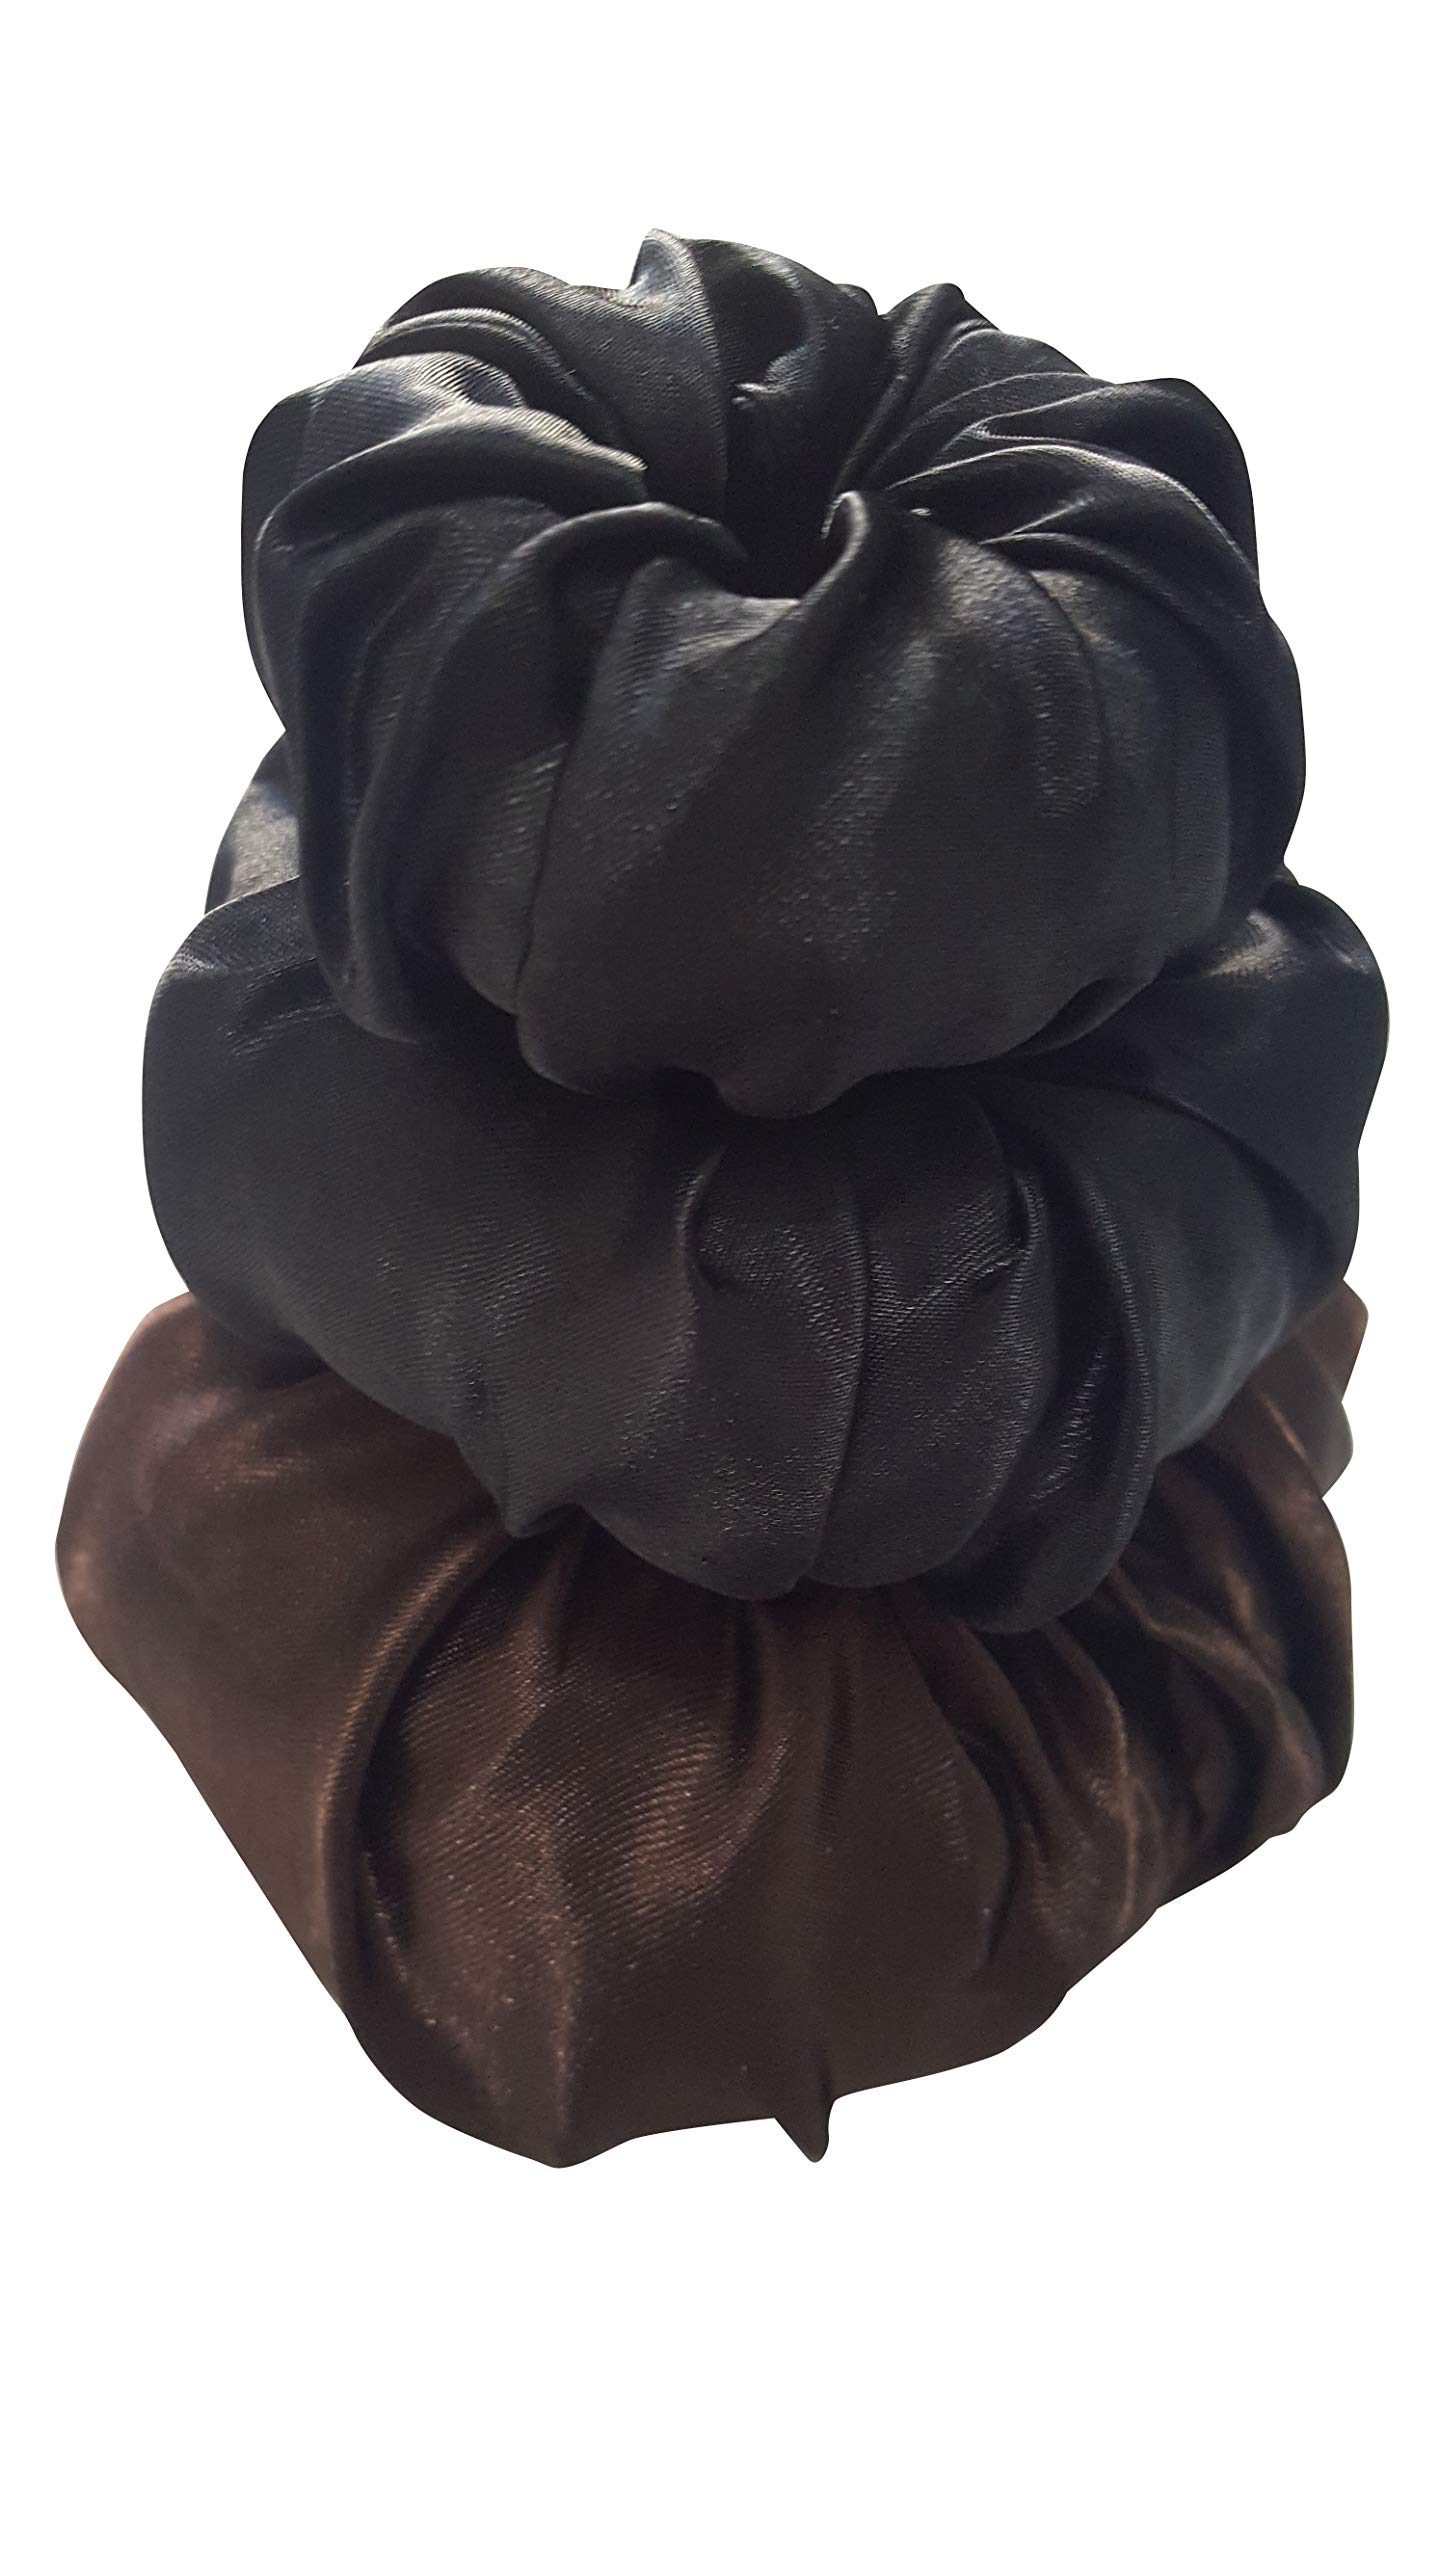 Satin Donut Hair Bun Maker (3-Pack) (3-Sizes) Easy Updo for Messy, Braided, Natural, or French Twists   Small, Medium, Large   Fits Girls, Teens, and Women by Always Eleven